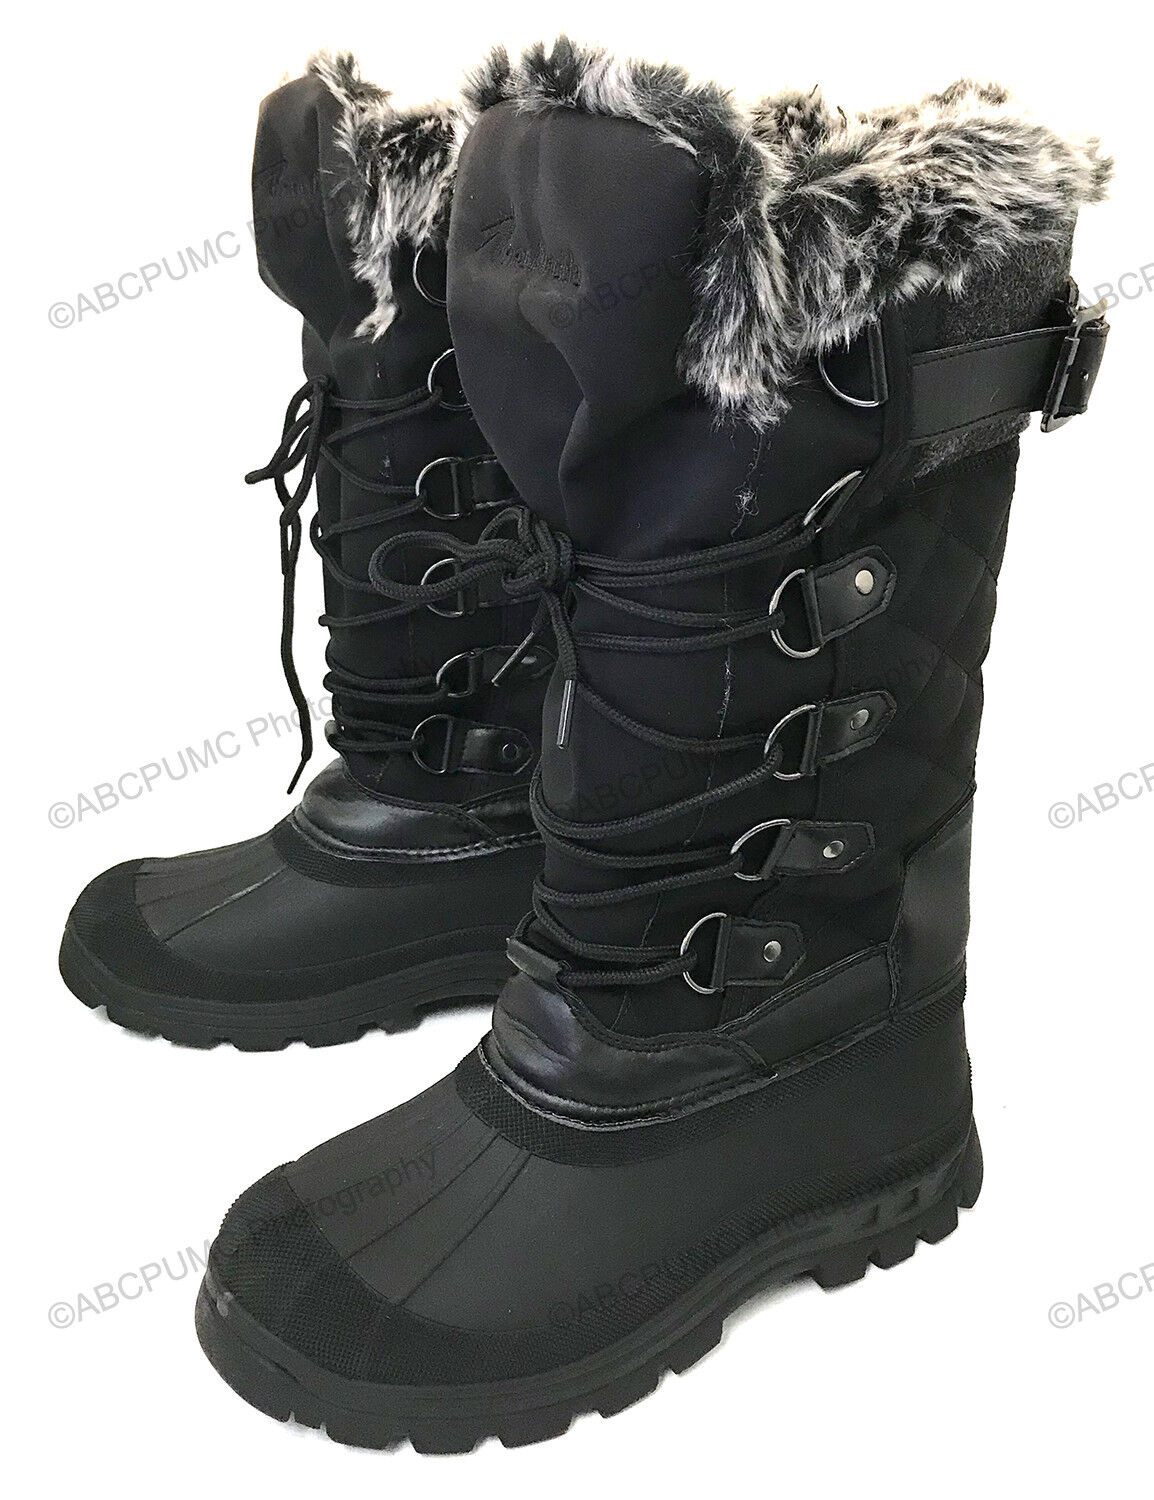 New Womens Winter Boots Fur Water Resistant Warm Insulated Zipper Ski Snow Shoes